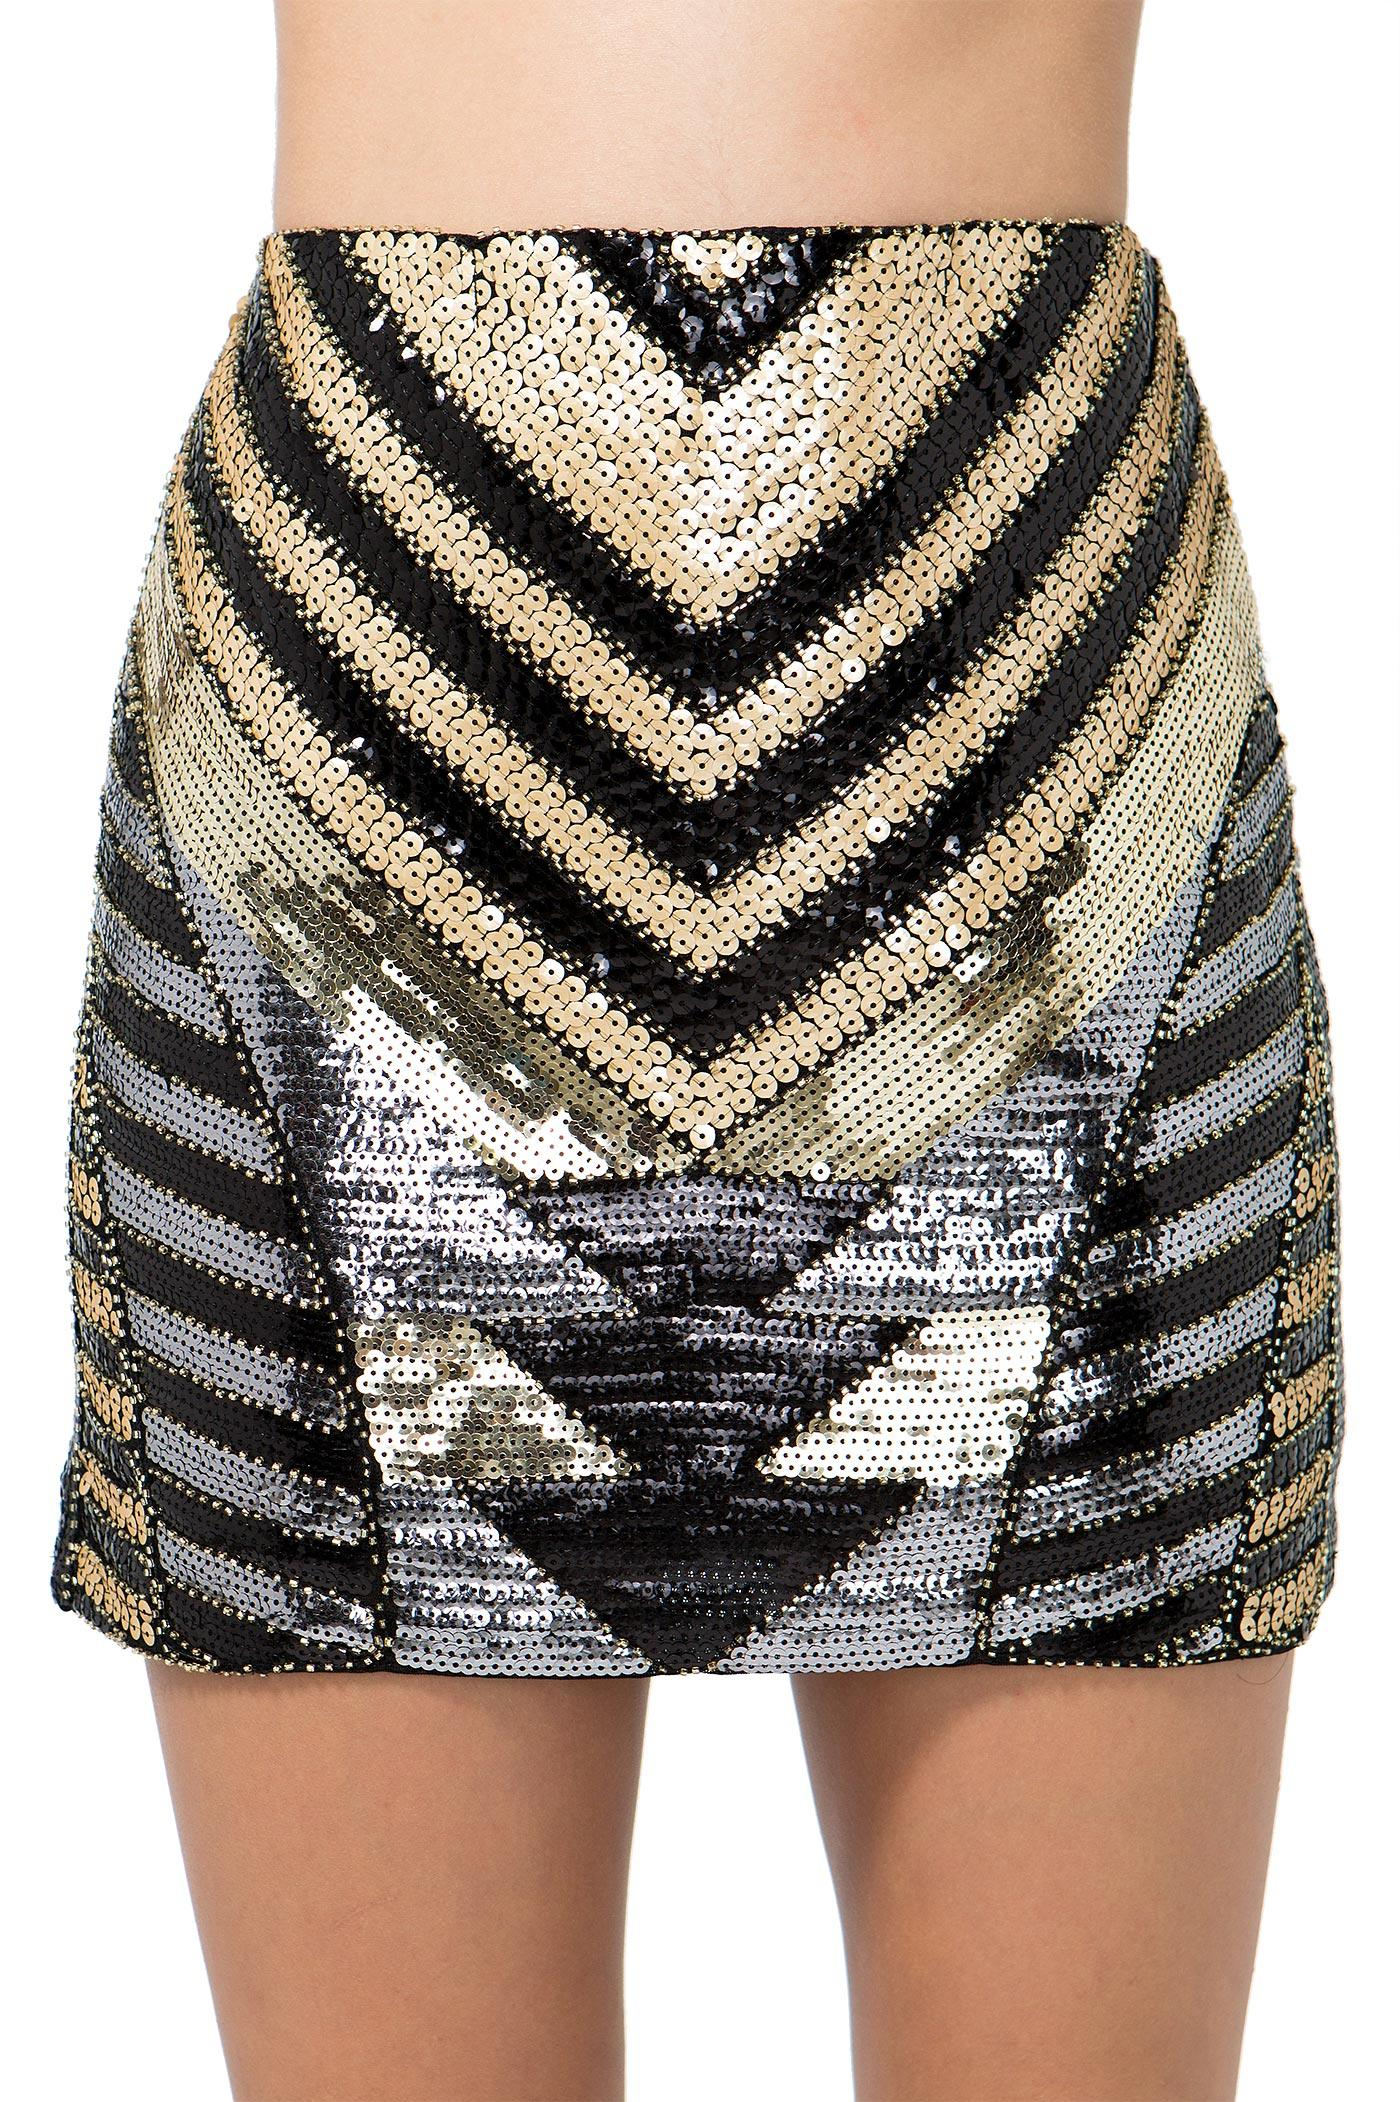 Find asos sequin skirt at ShopStyle. Shop the latest collection of asos sequin skirt from the most popular stores - all in one place.